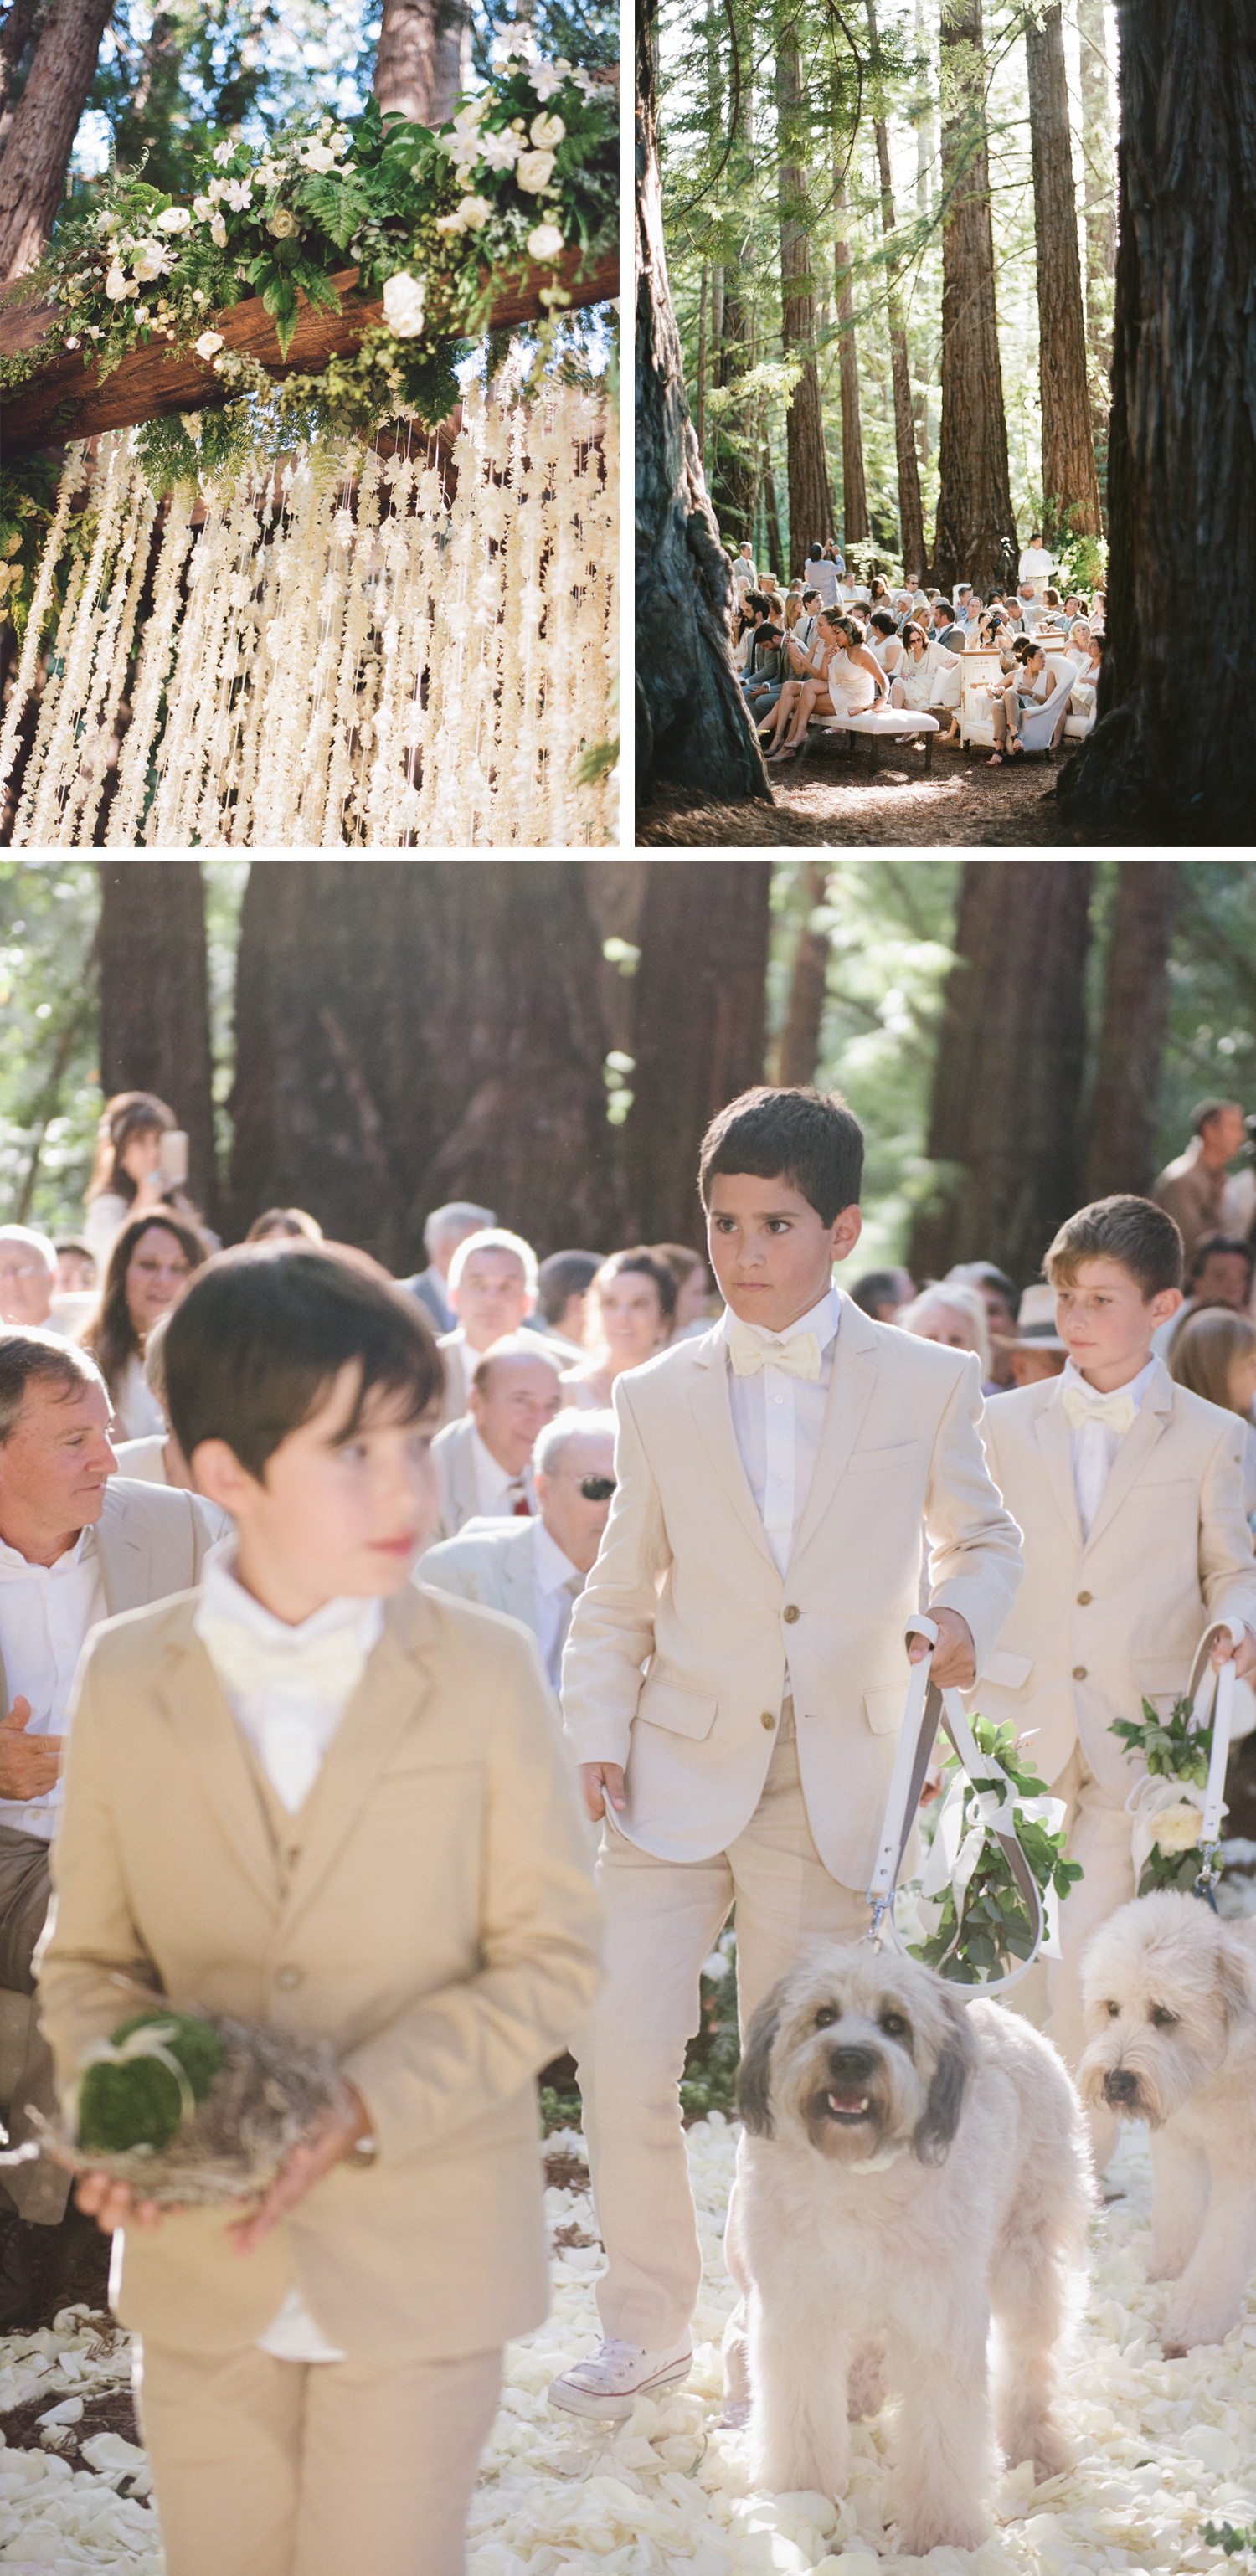 Two labradoodles act as ringbearers in the gorgeous dappled-sunlight ceremony; the arbor is strung with garlands of white florals; photos by Sylvie Gil